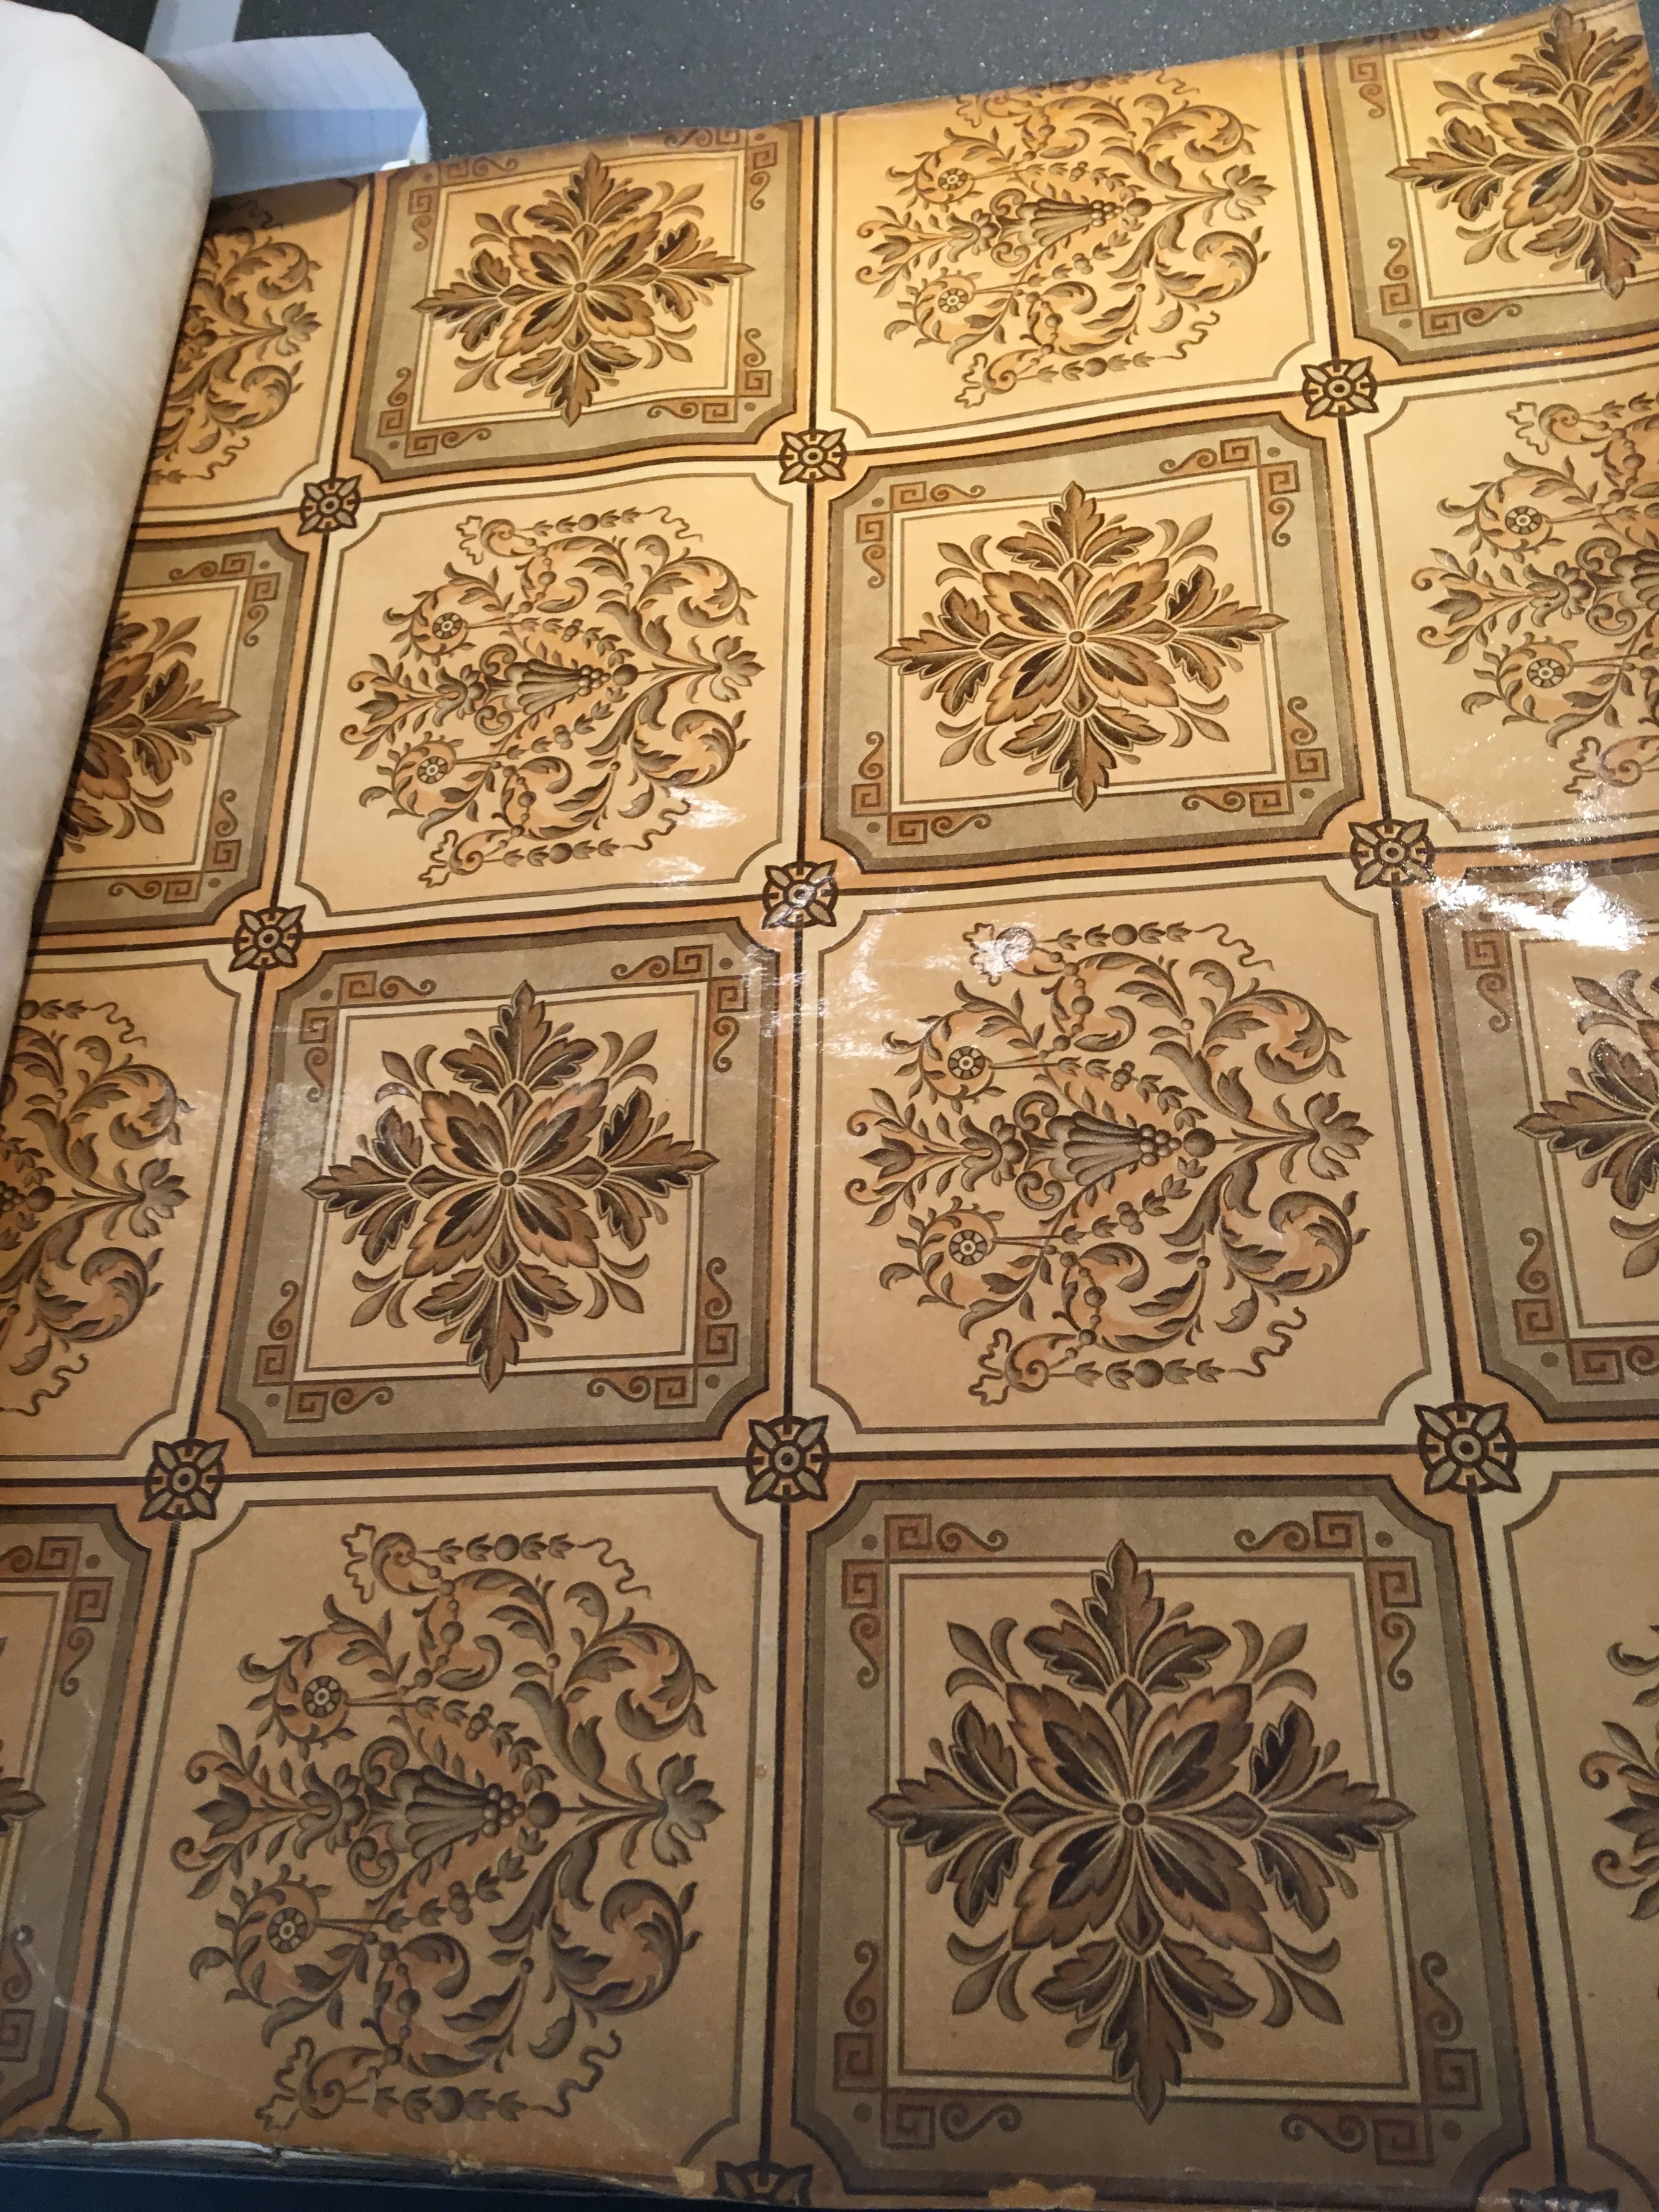 Victorian sanitary wallpaper with tile design dating 1892